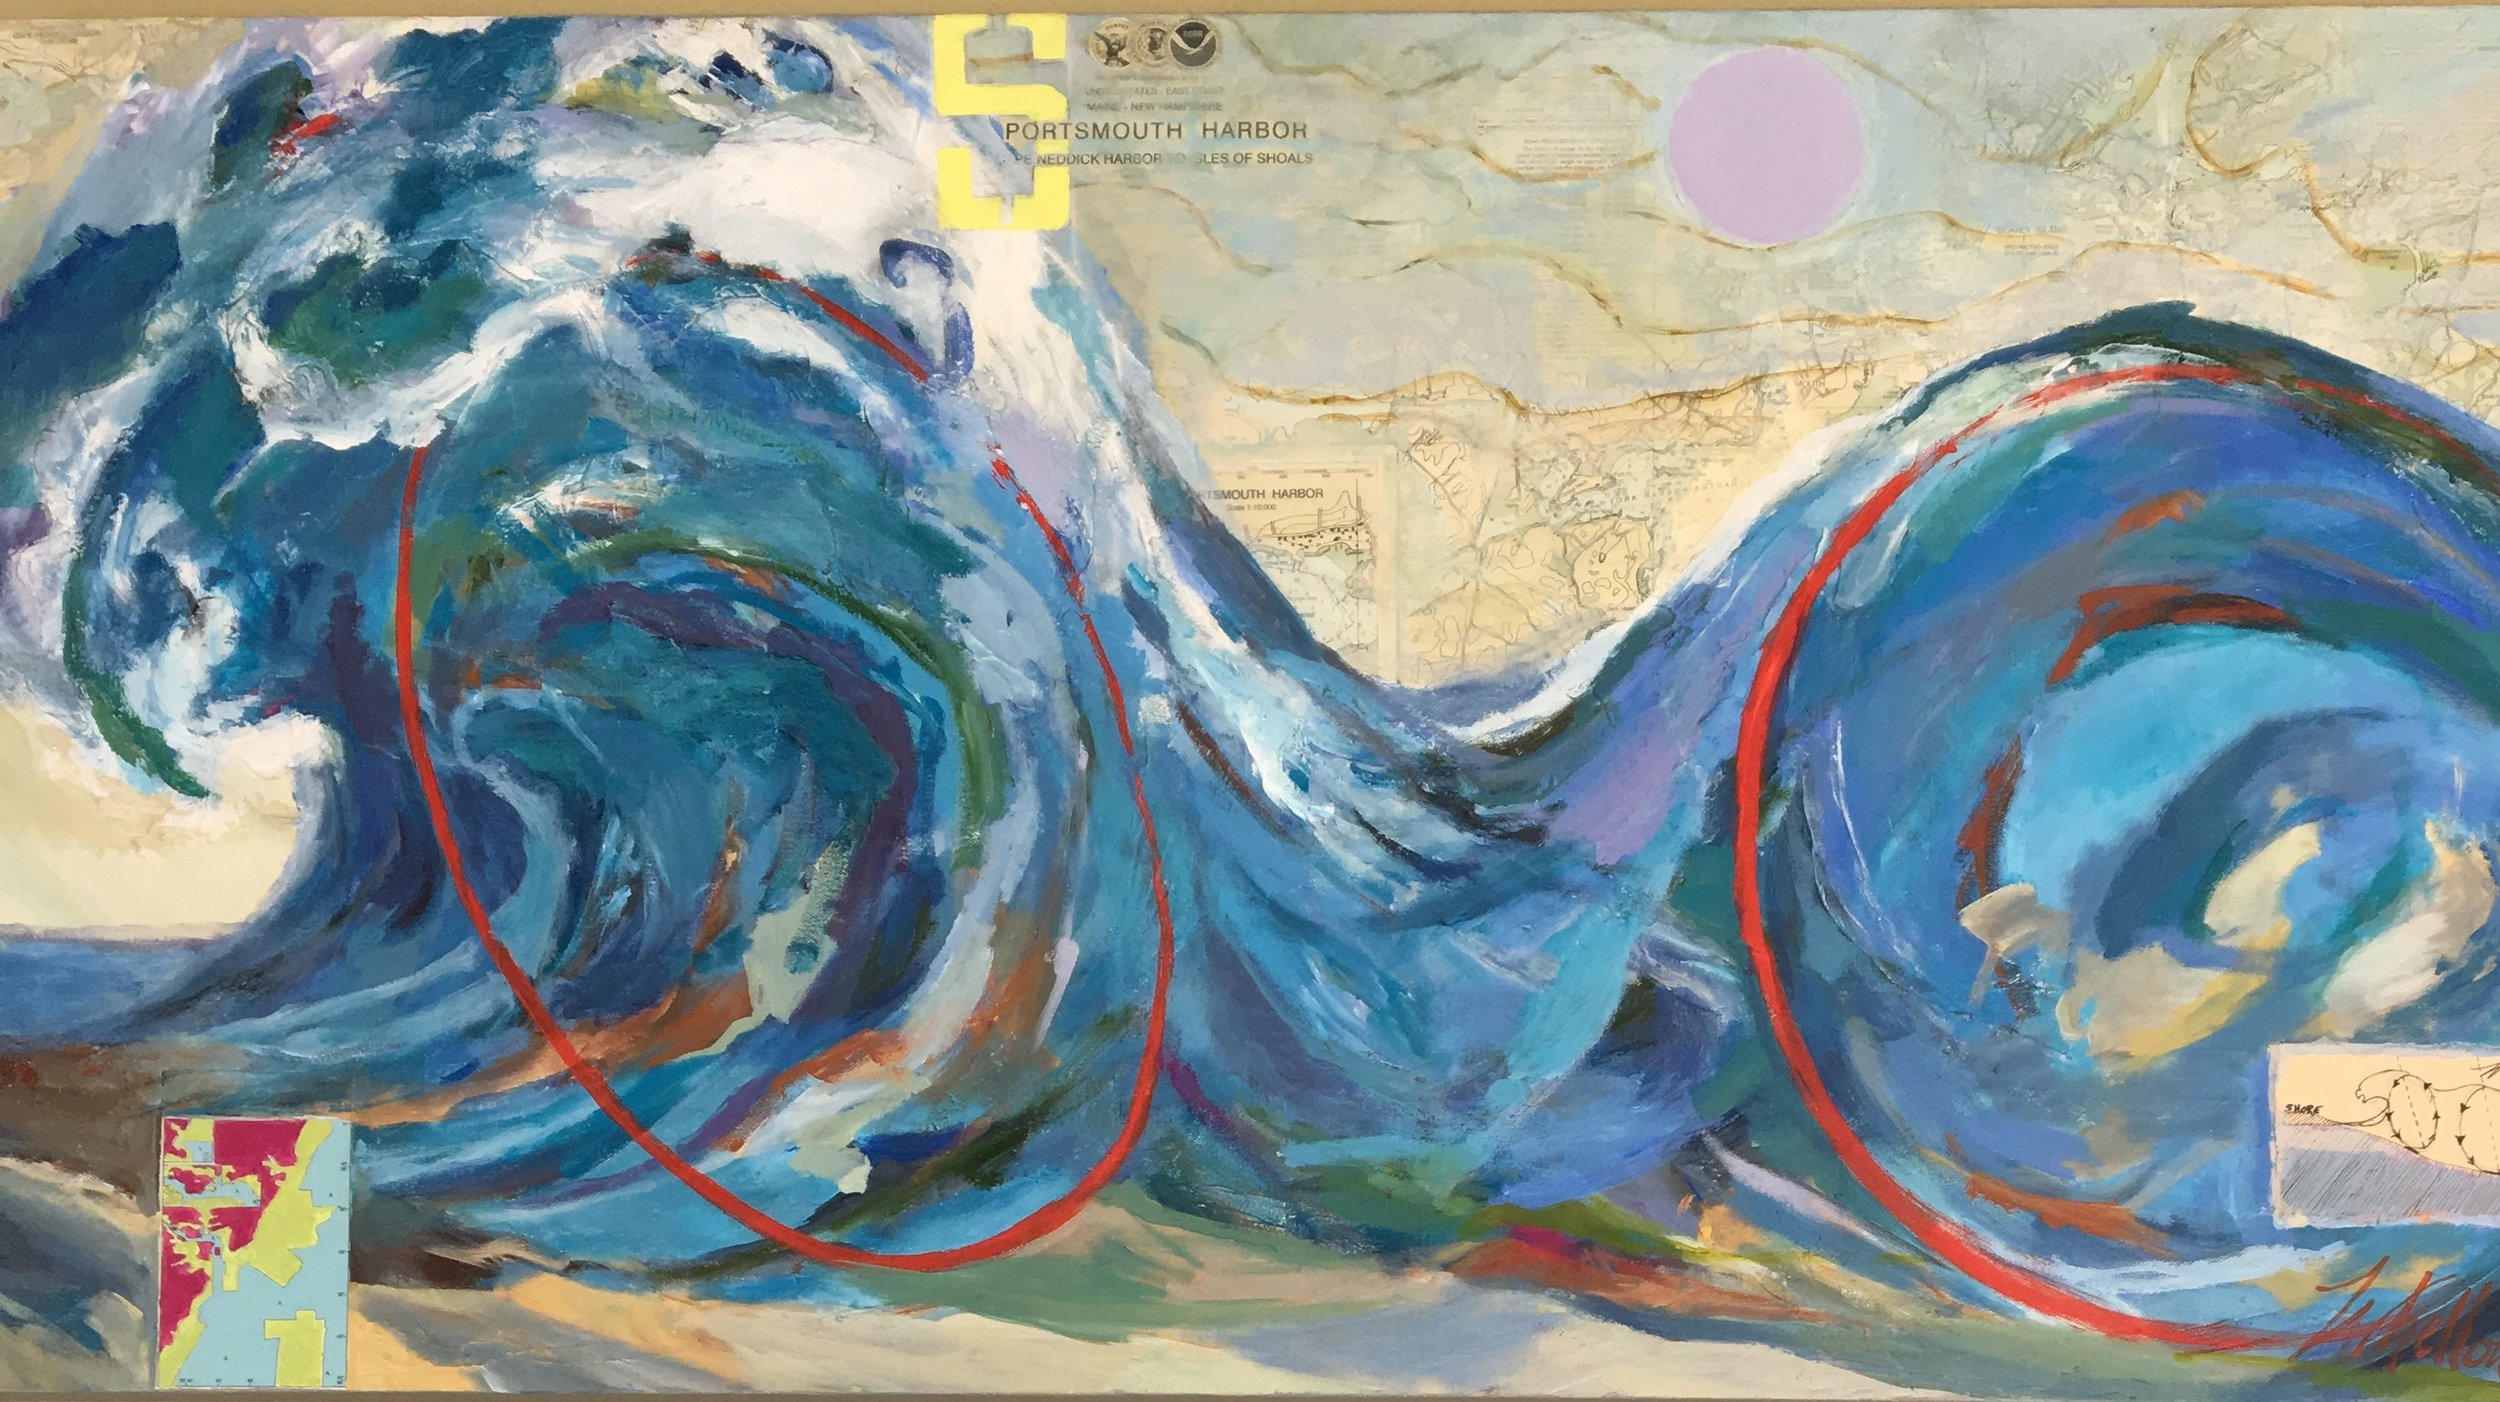 "$3200. Equinox Wave (ORIGINAL) 48"" X 24"" mixed media acrylic with nautical charts collaged into painting surface."